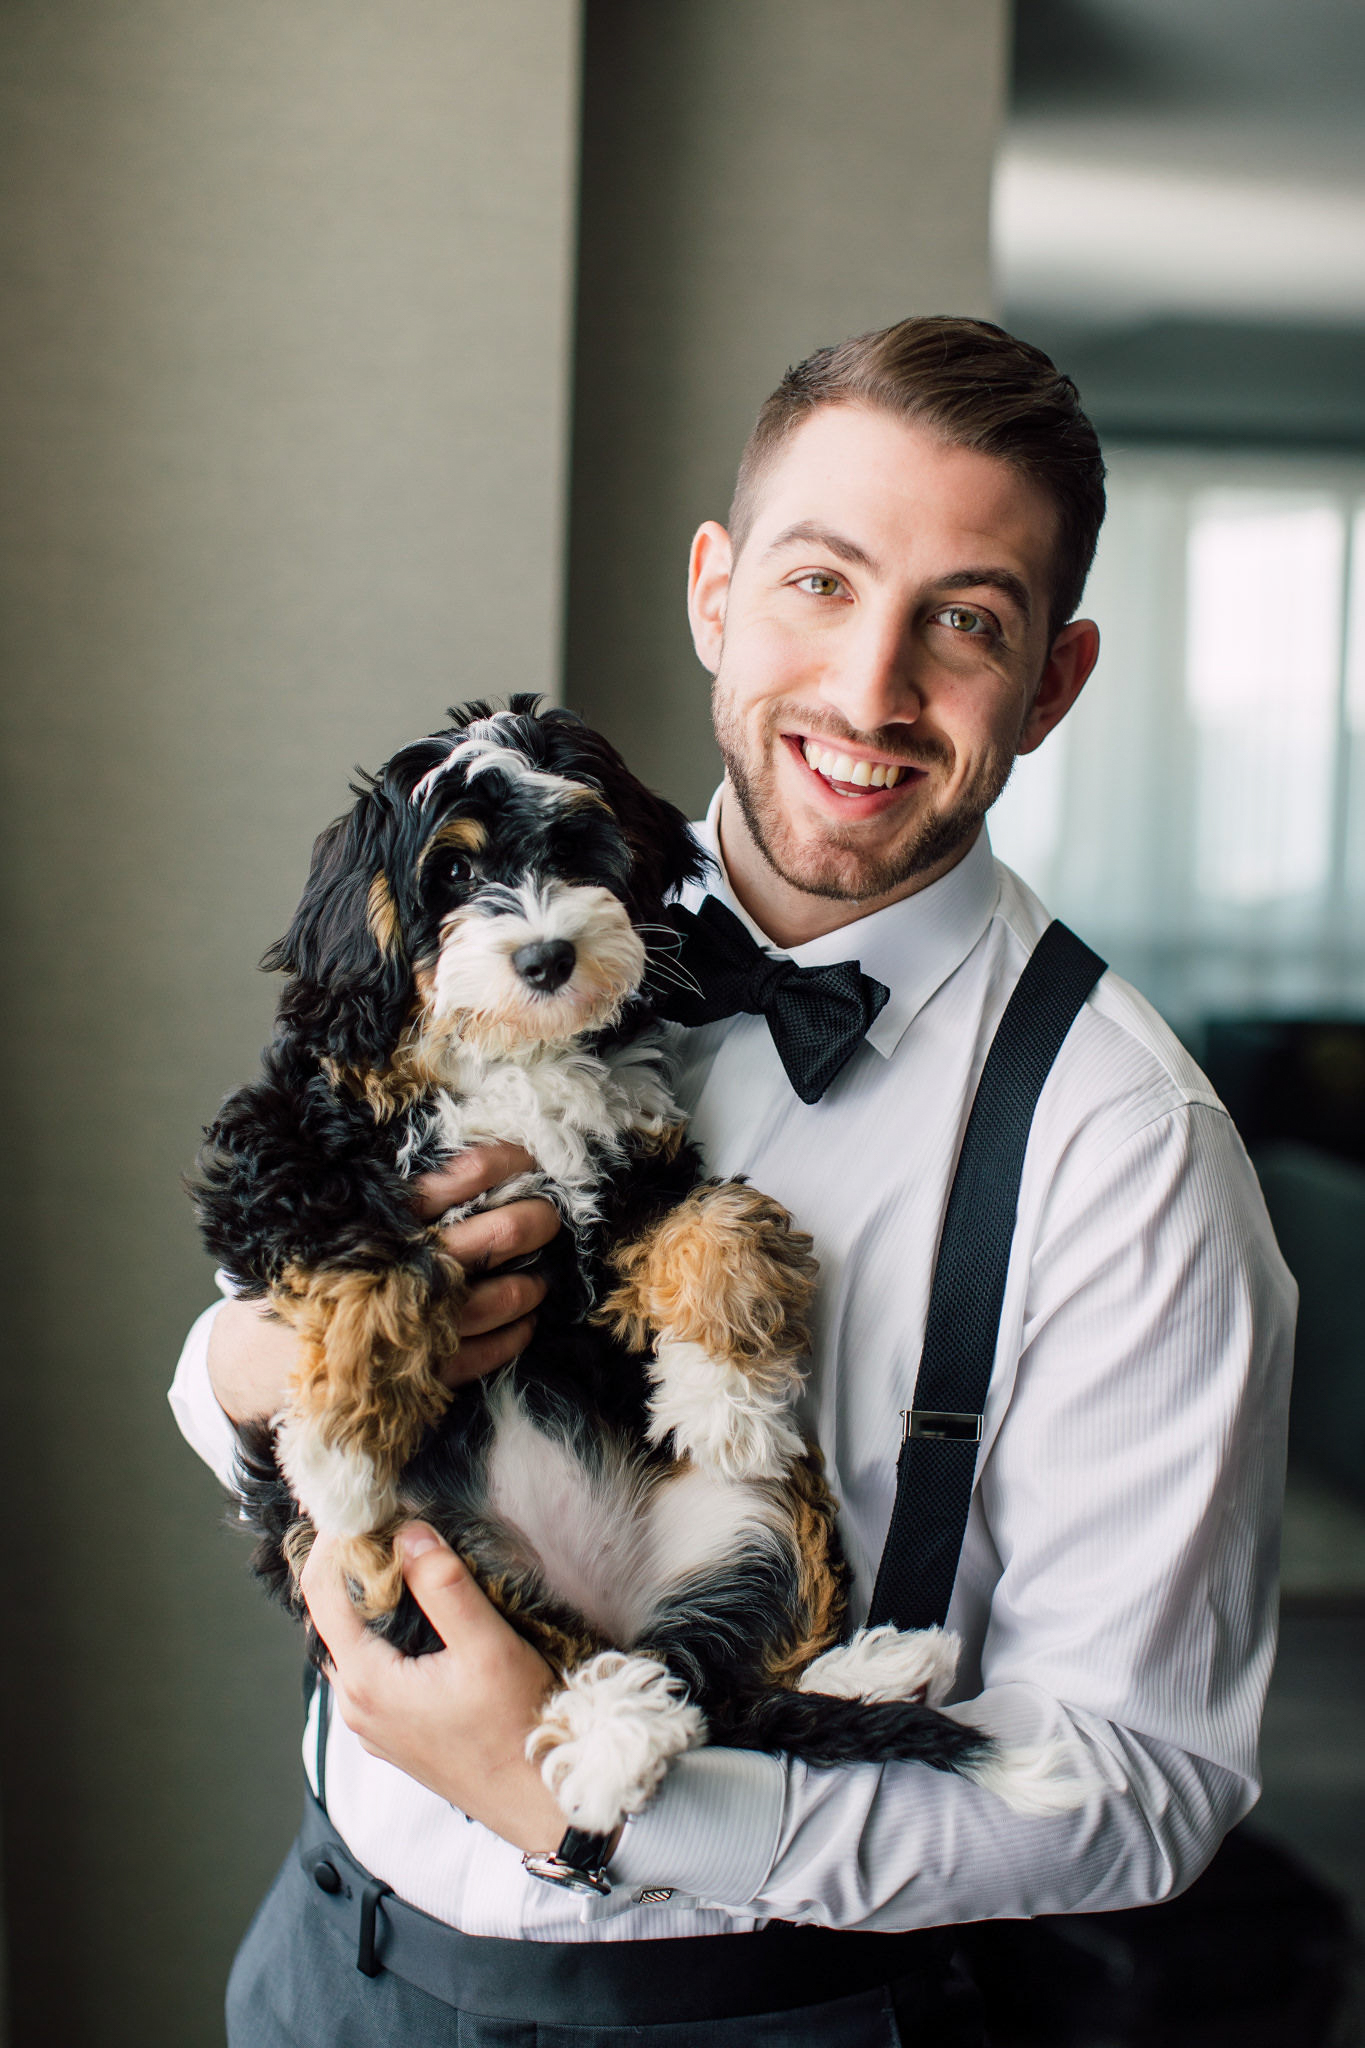 Groom and dog